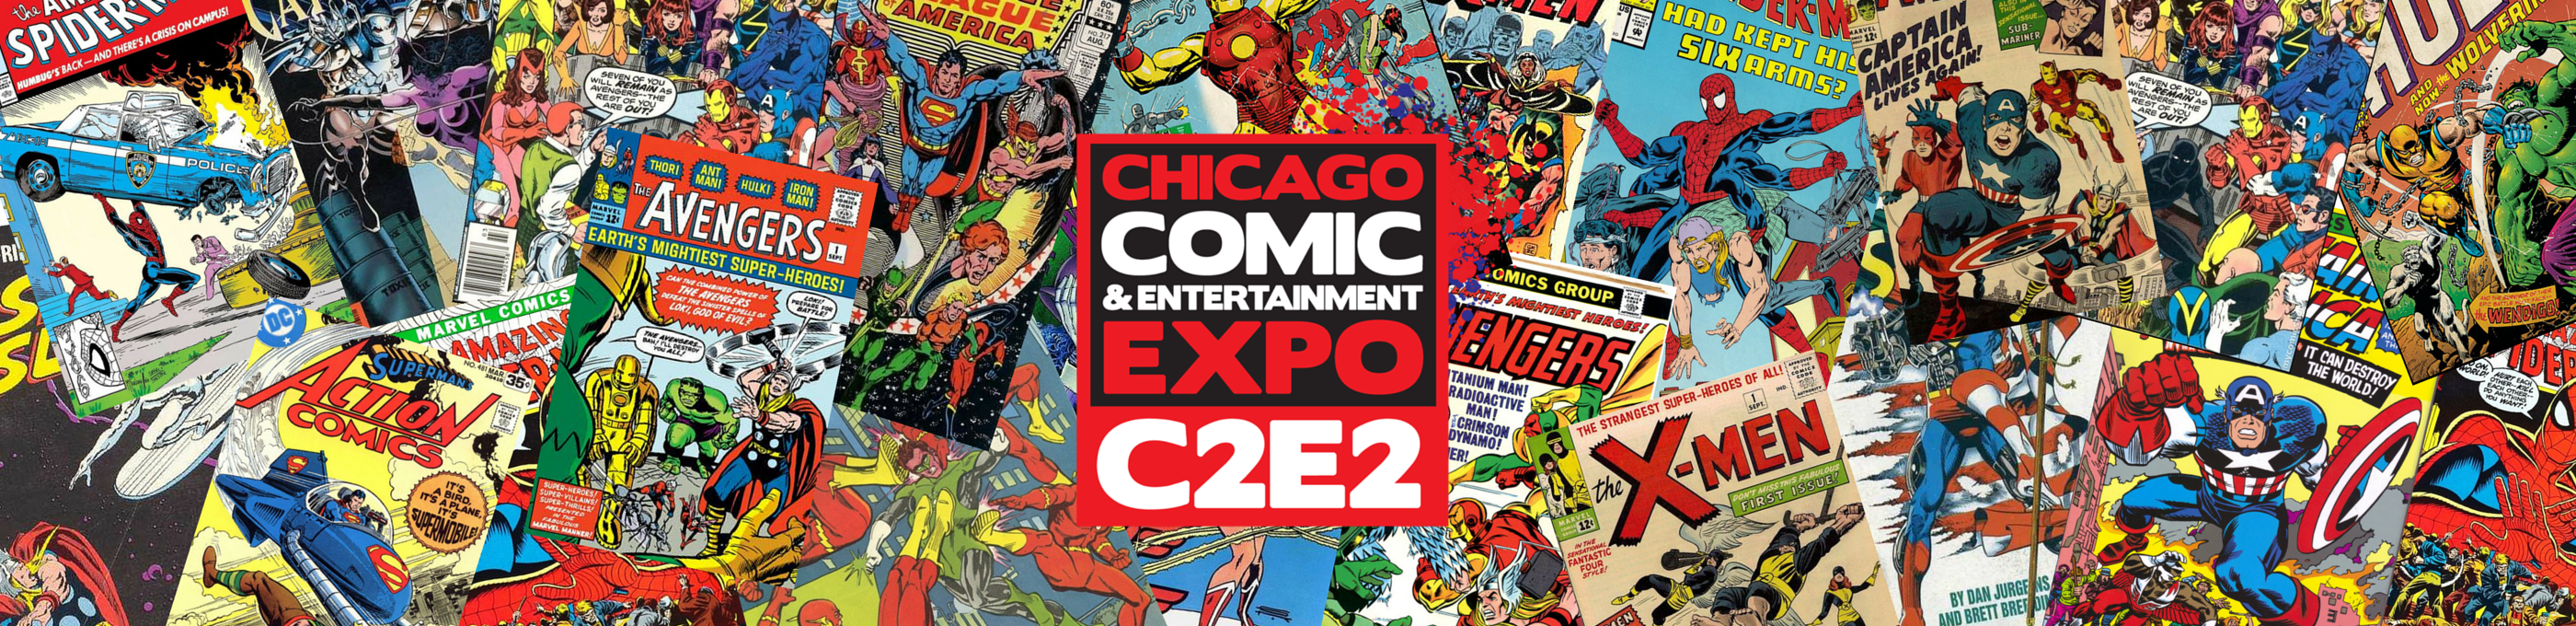 Chicago calls comic nerds and entertainment enthusiasts to C2E2